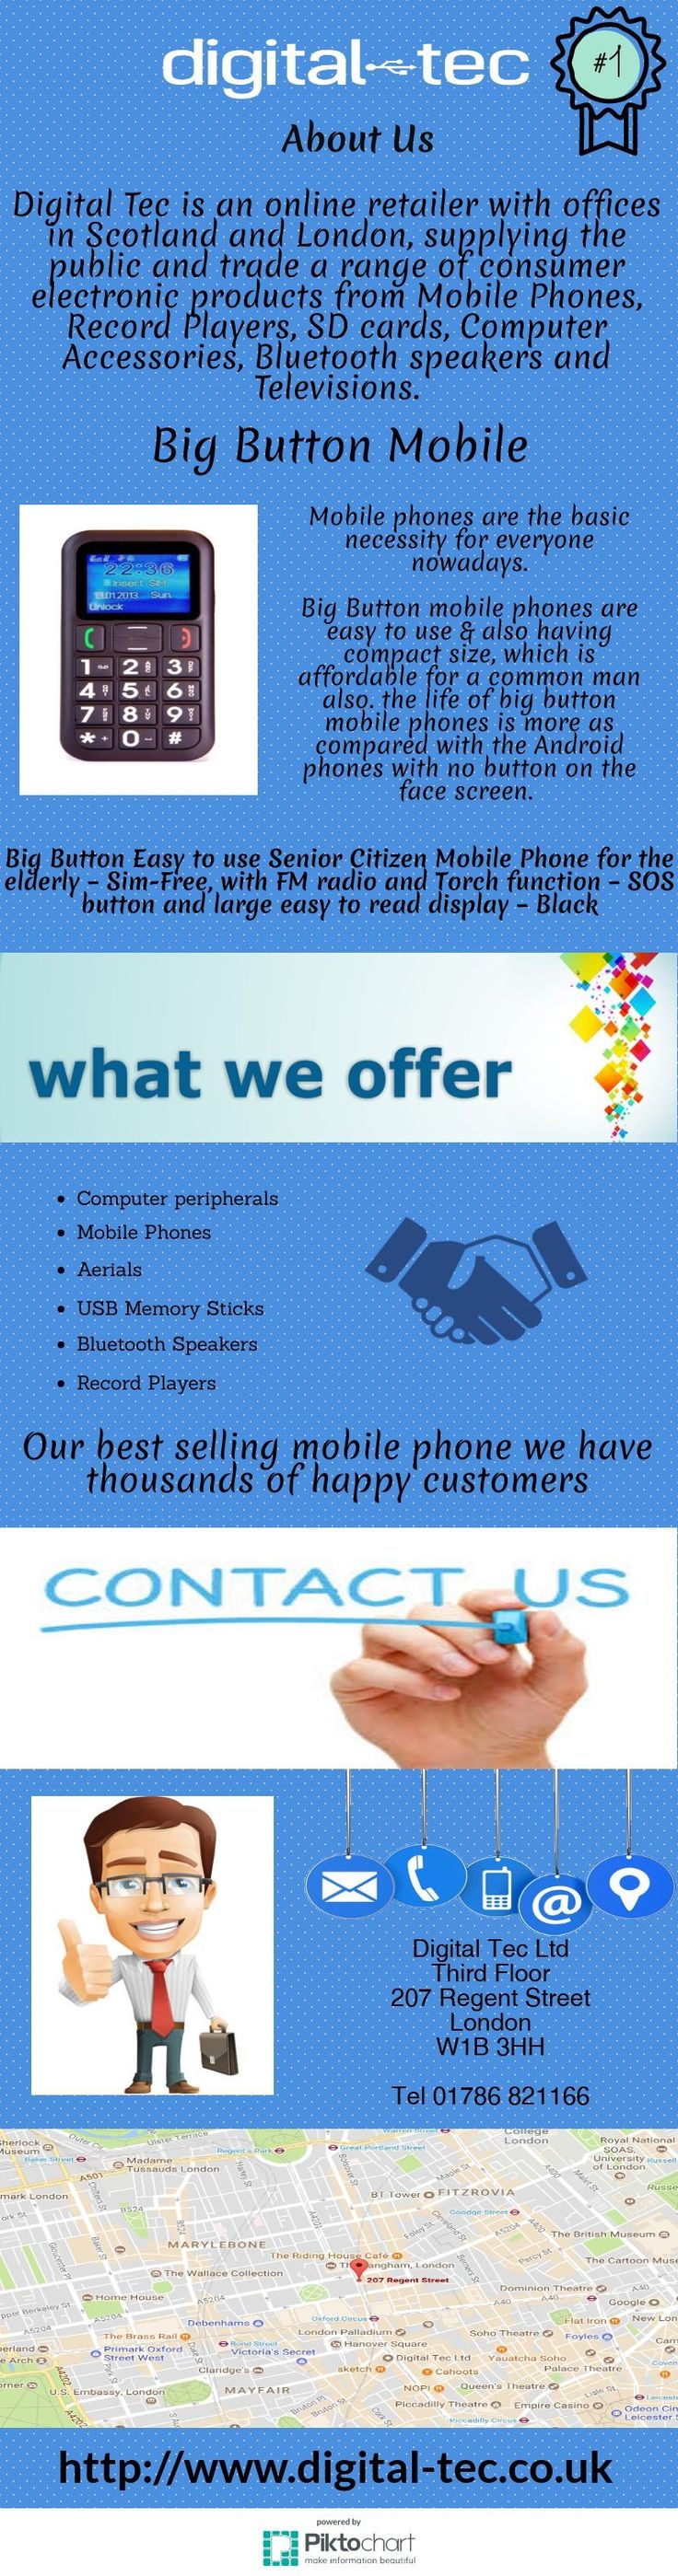 Looking for #Big #Button #Phone For Senior Citizen? then #Digital_Tec is an online retailer and offers wide range of consumer electronic products like #BigButtonMobile, Record Players, SD cards, Computer Accessories, Bluetooth speakers and Televisions.